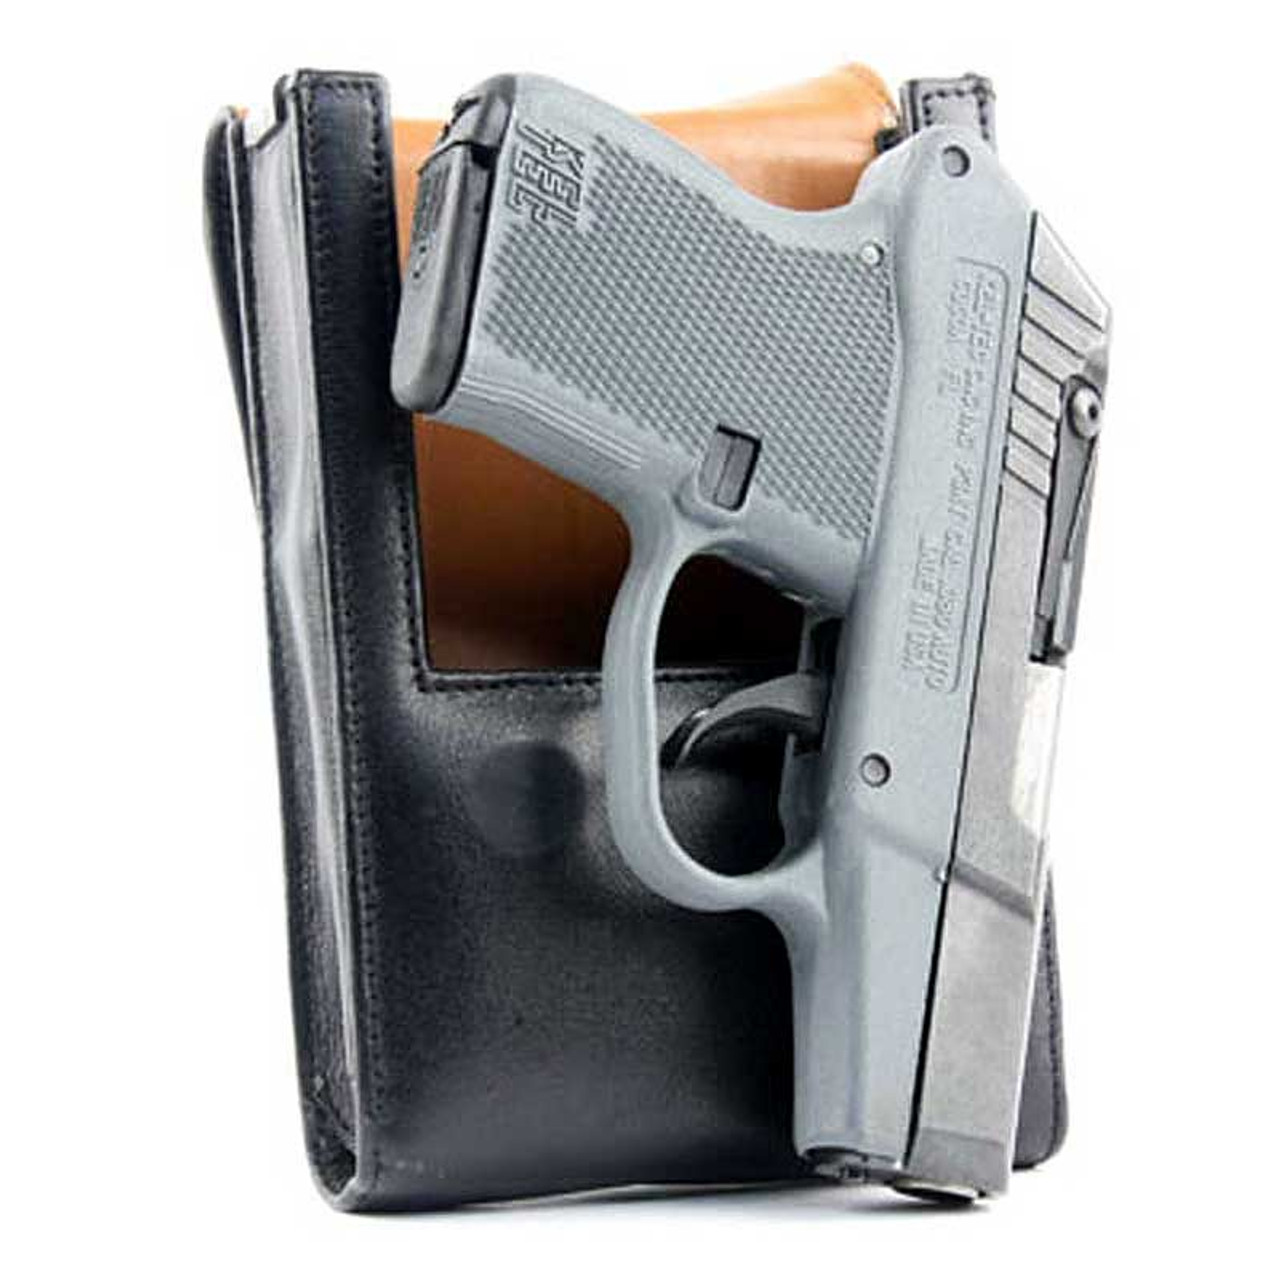 Keltec P3AT Holster